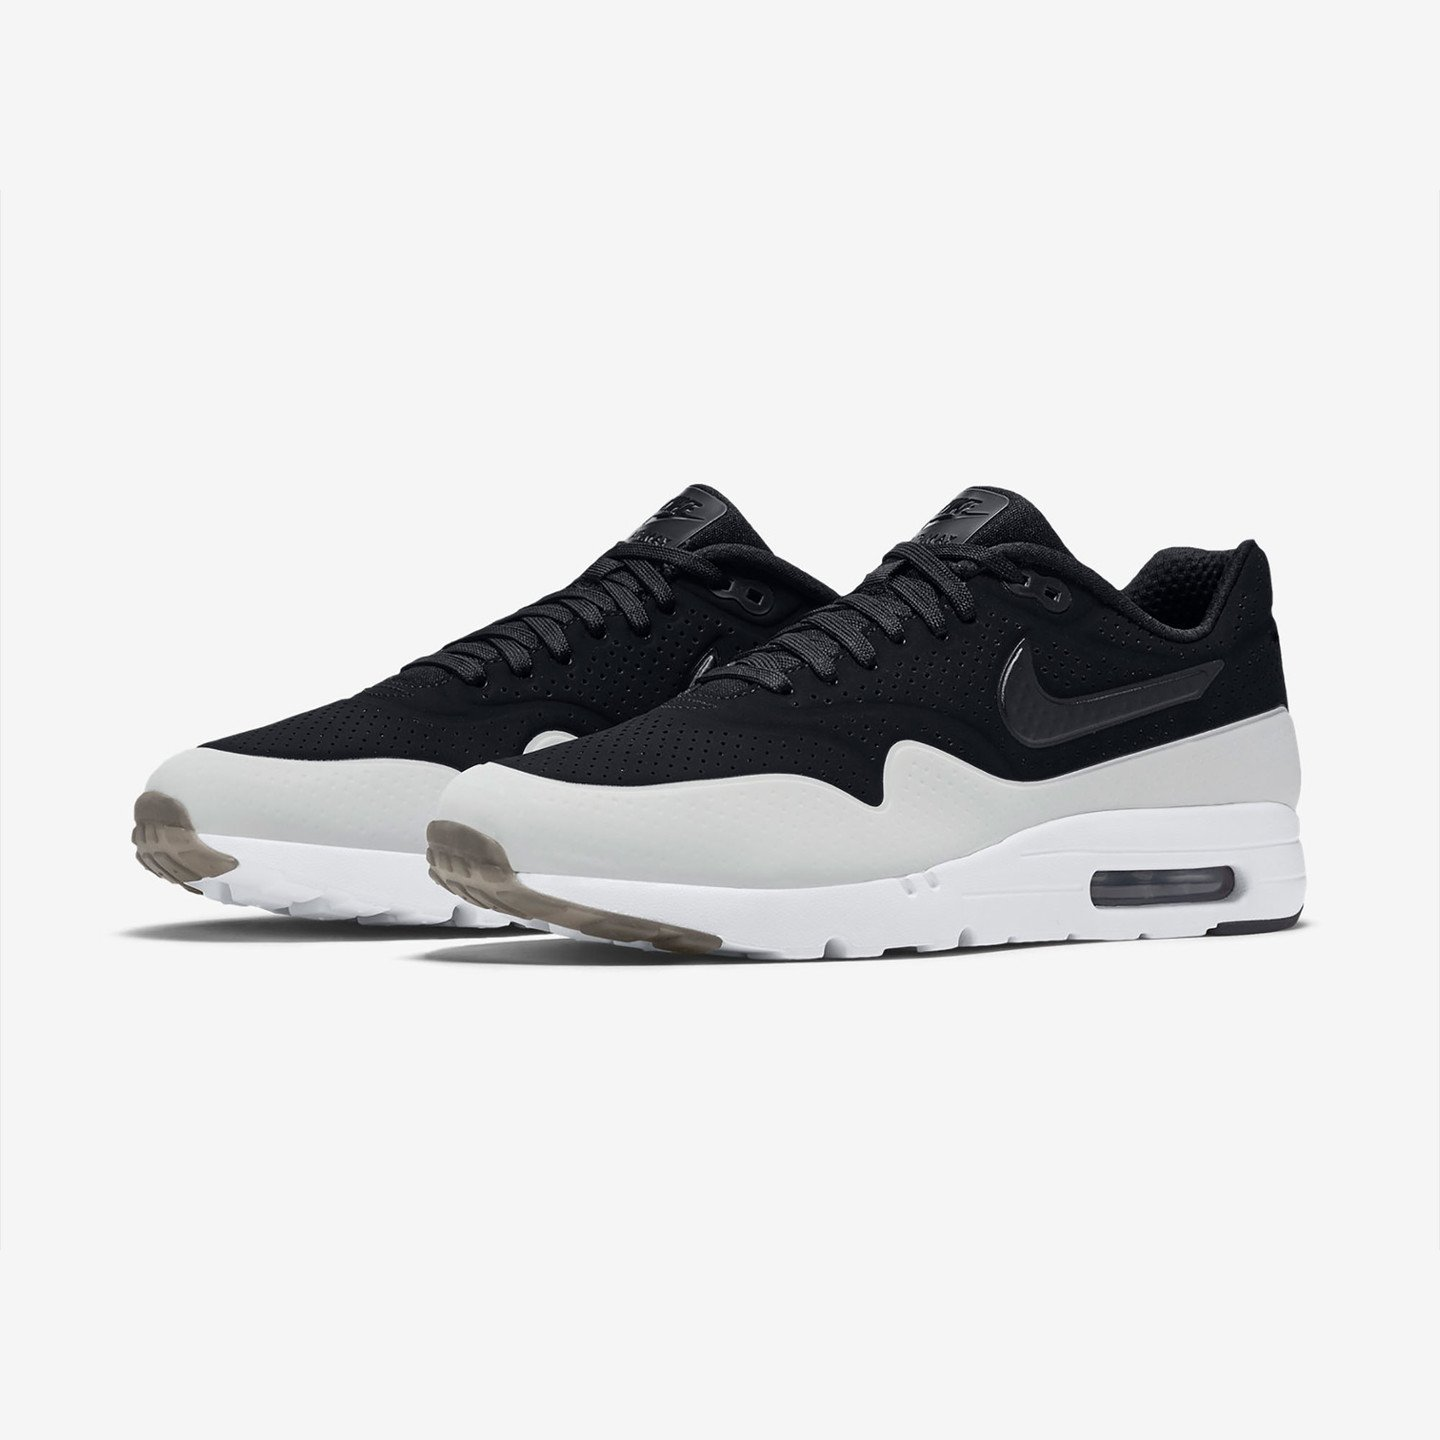 Nike Air Max 1 Ultra Moire Black / White 705297-011-41